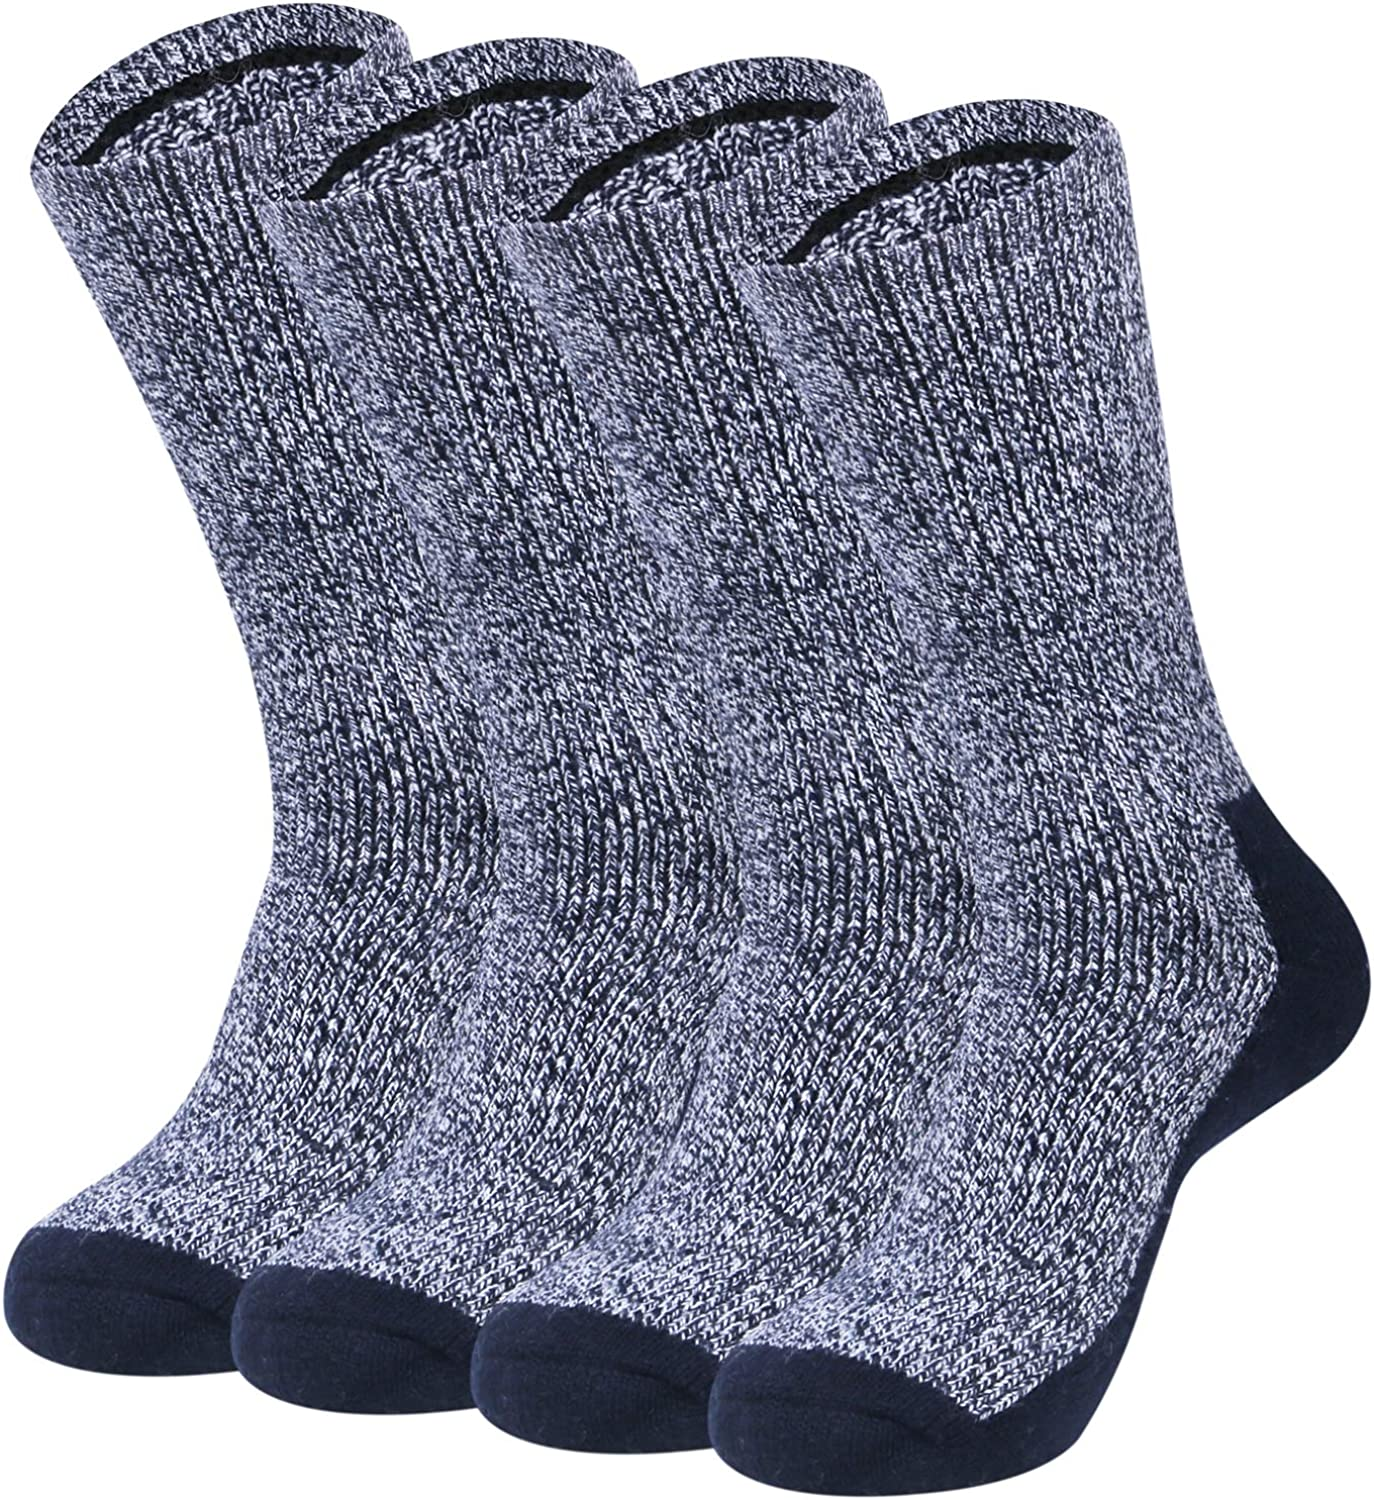 80% Merino Wool Socks Mens, Women Winter Hiking Athletic Socks Thermal Outdoor Sports Warm Socks for Cold Weather